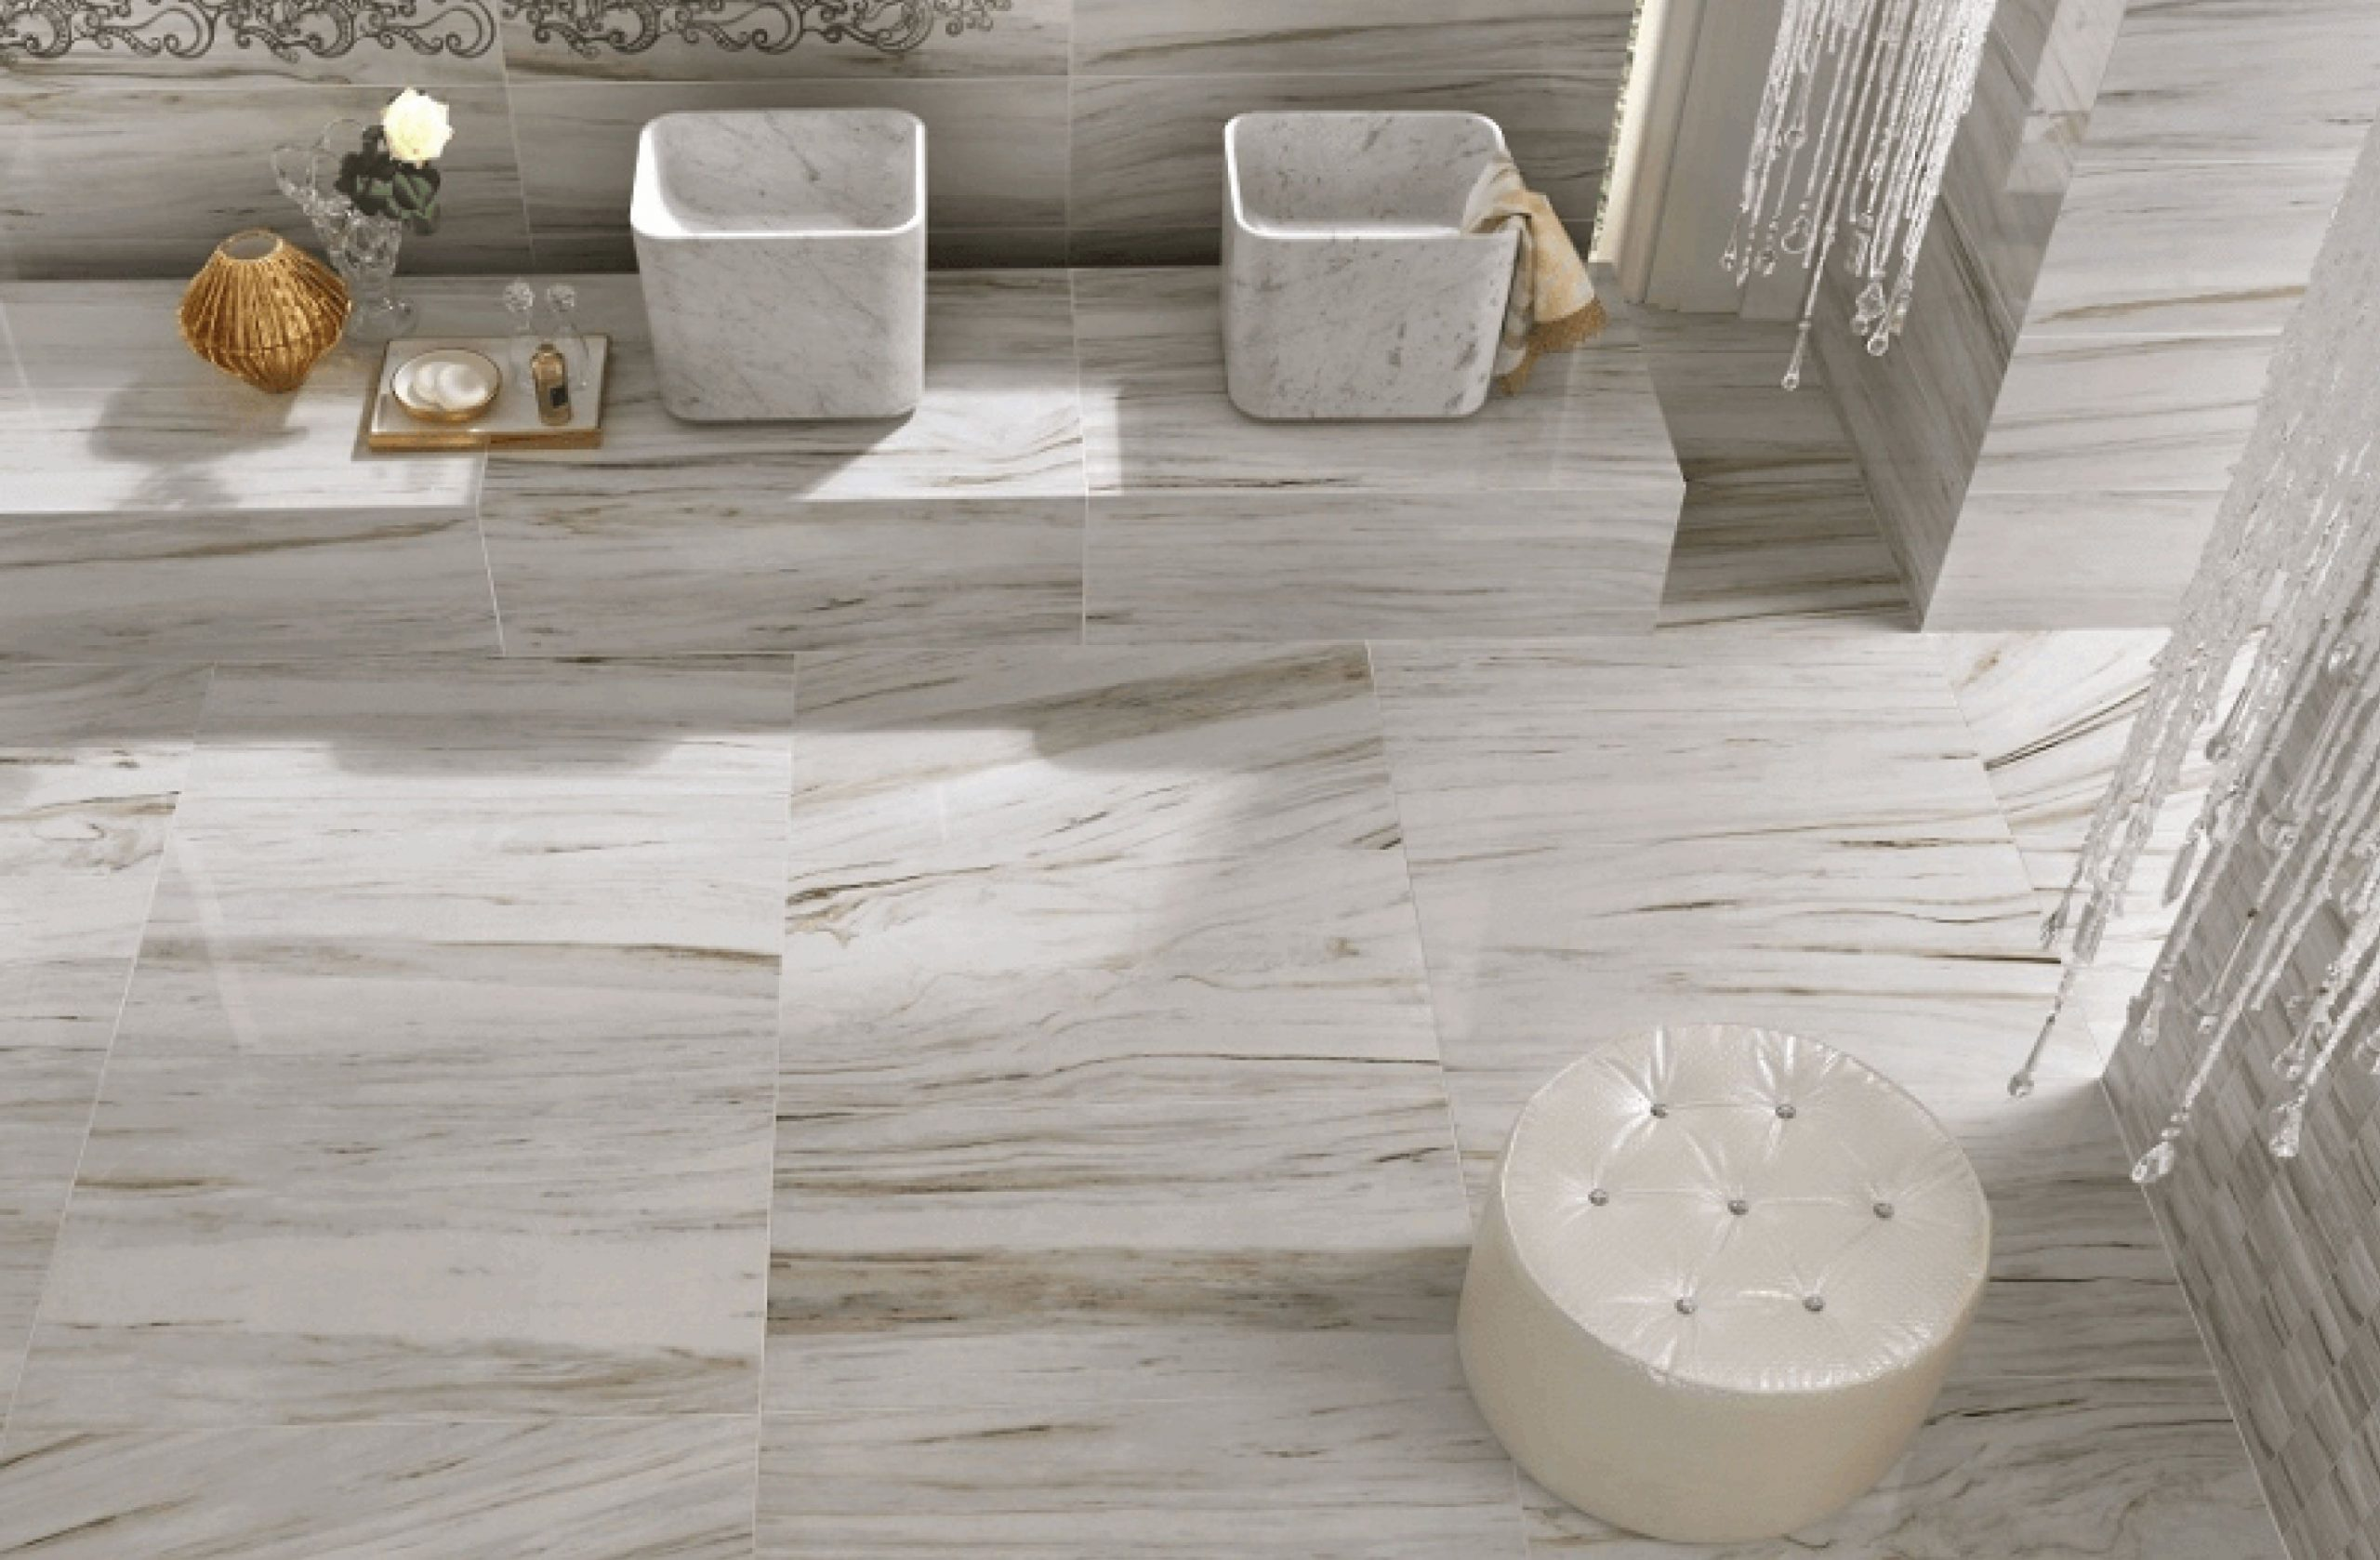 How to Differentiate Good Tiles from Bad Tiles